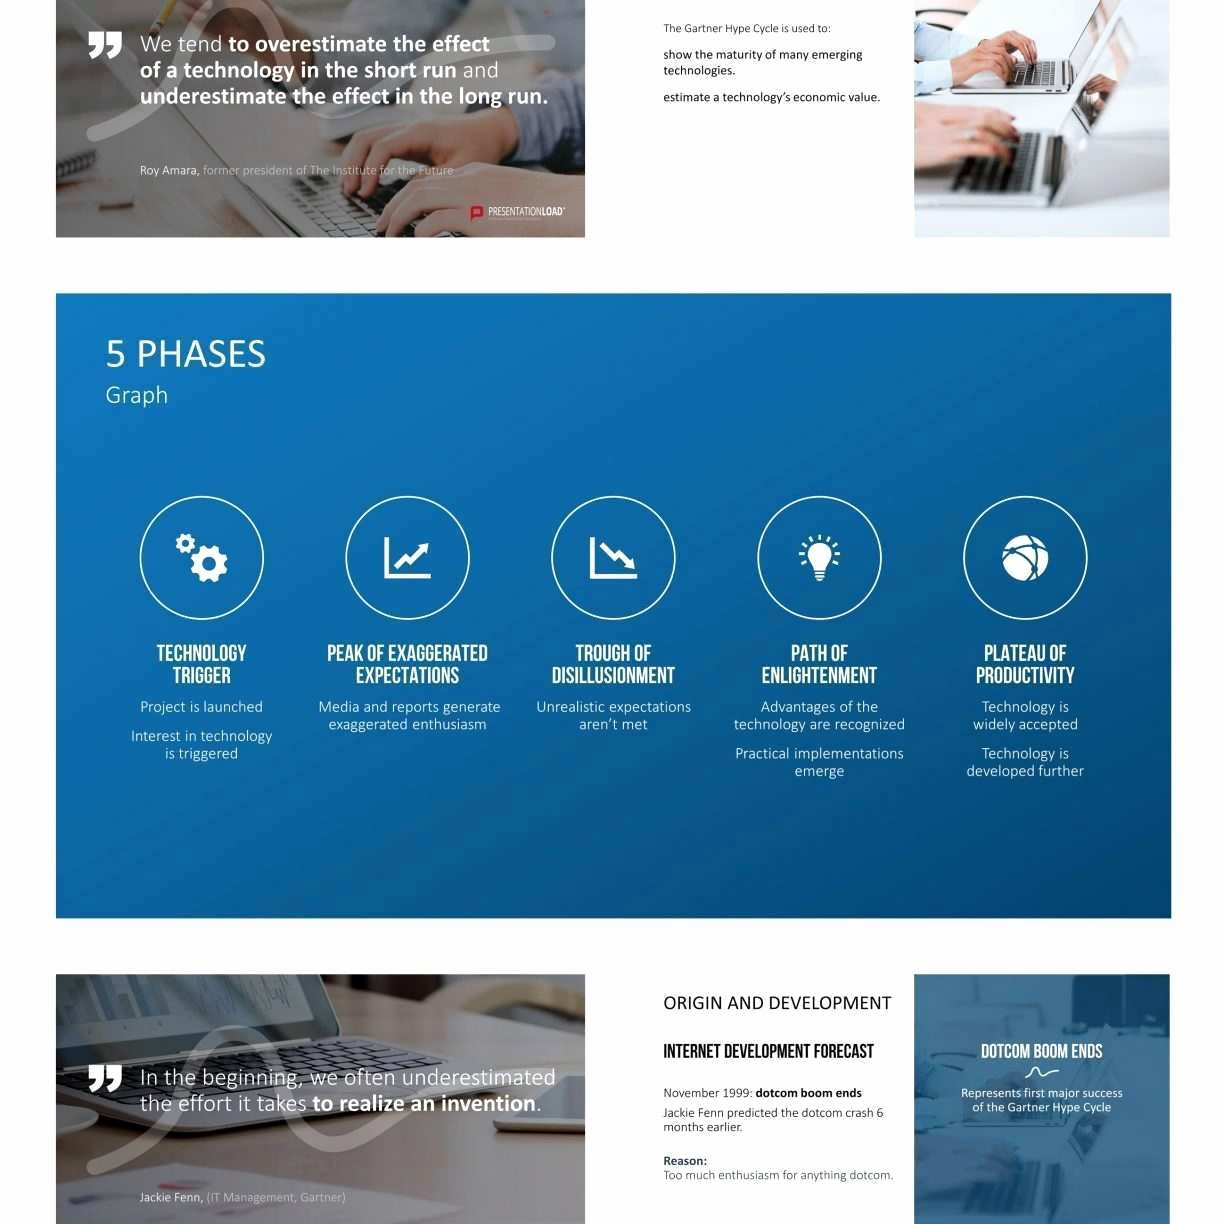 Powerpoint Business Card Template Beautiful Business Card Templates for Word Free Download New